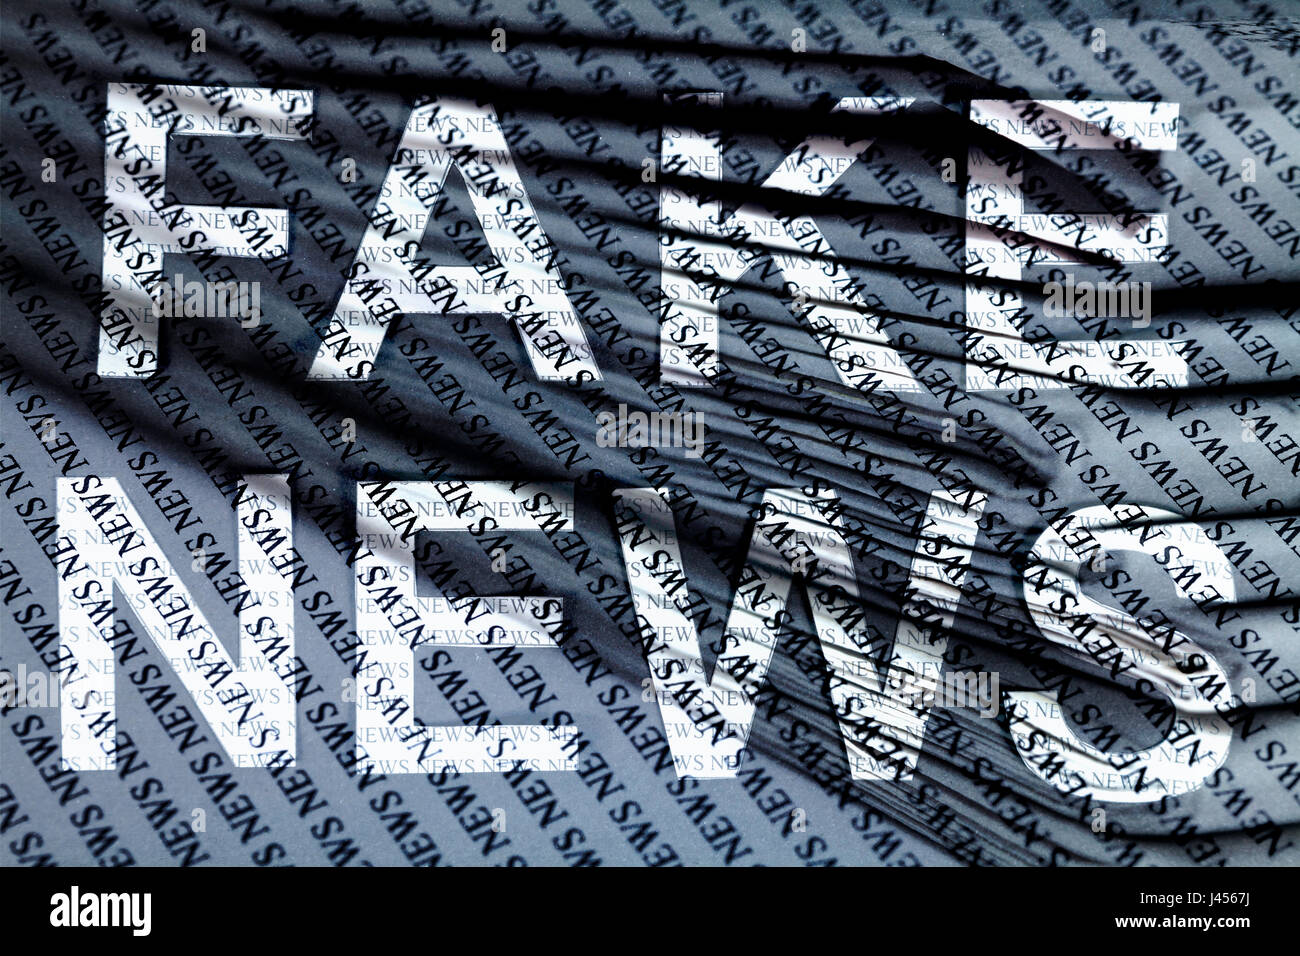 Fake News - Stock Image